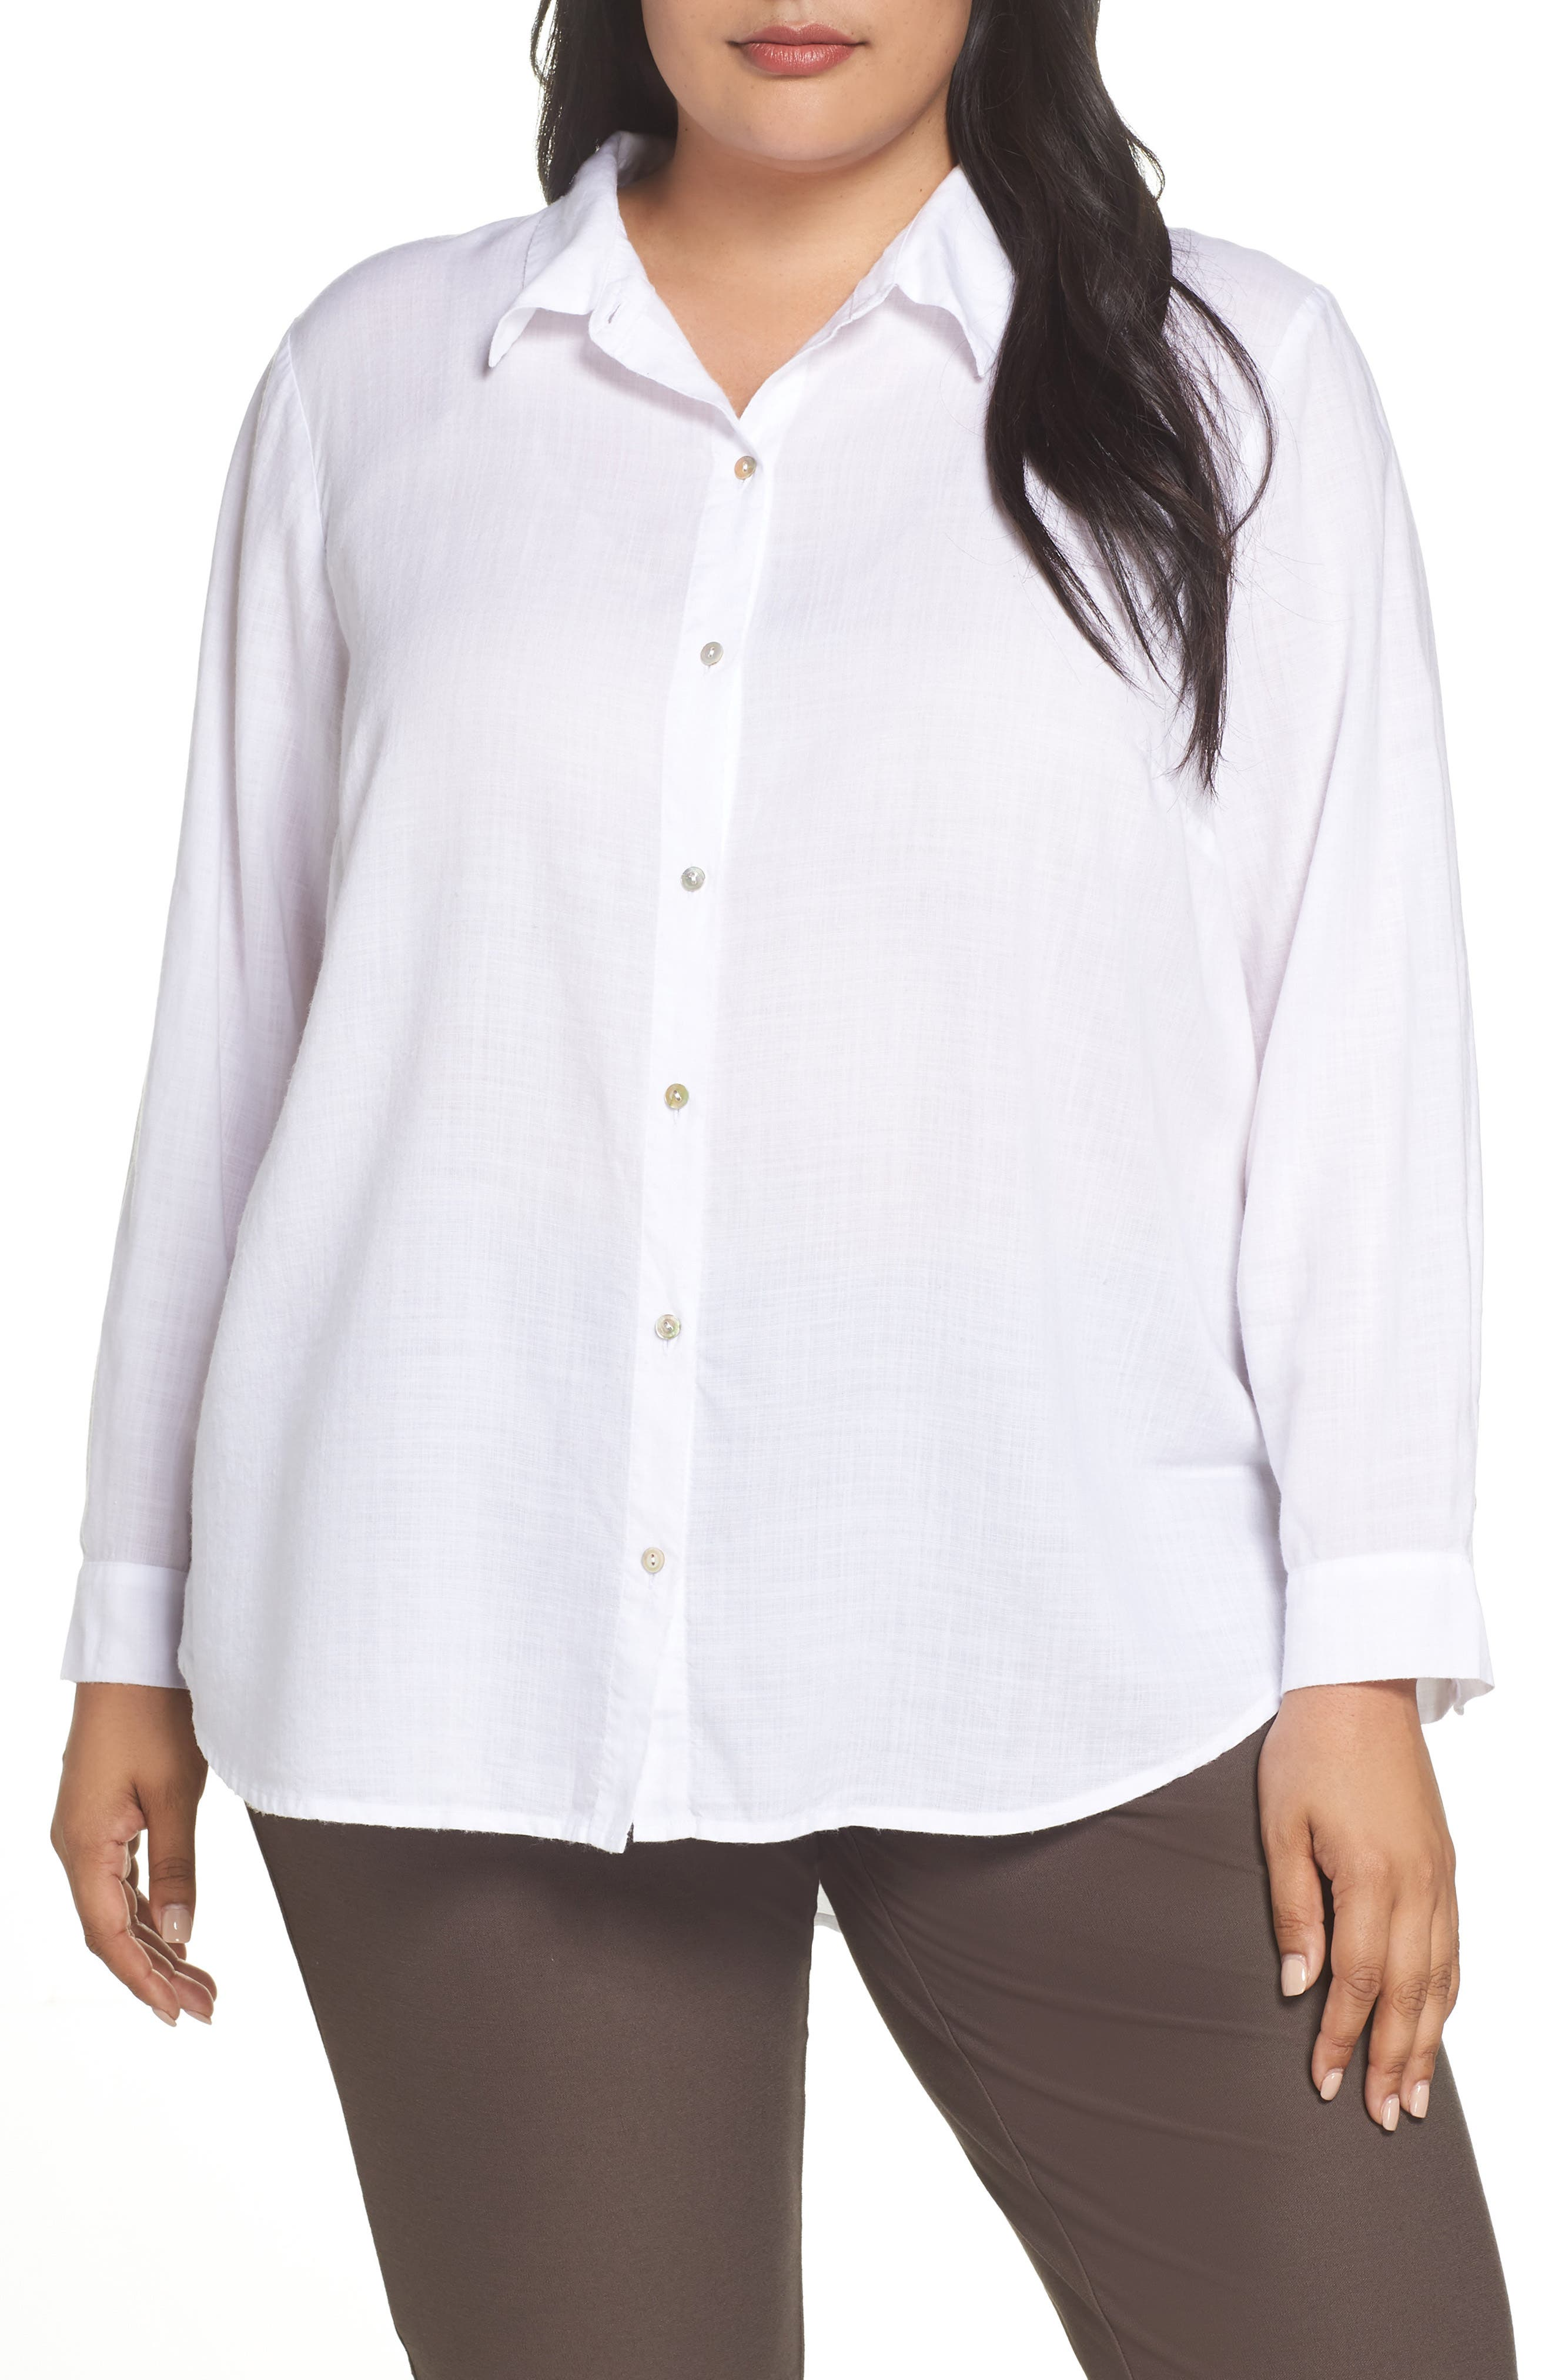 EILEEN FISHER, Tencel<sup>®</sup> Lyocell Shirt, Main thumbnail 1, color, WHITE